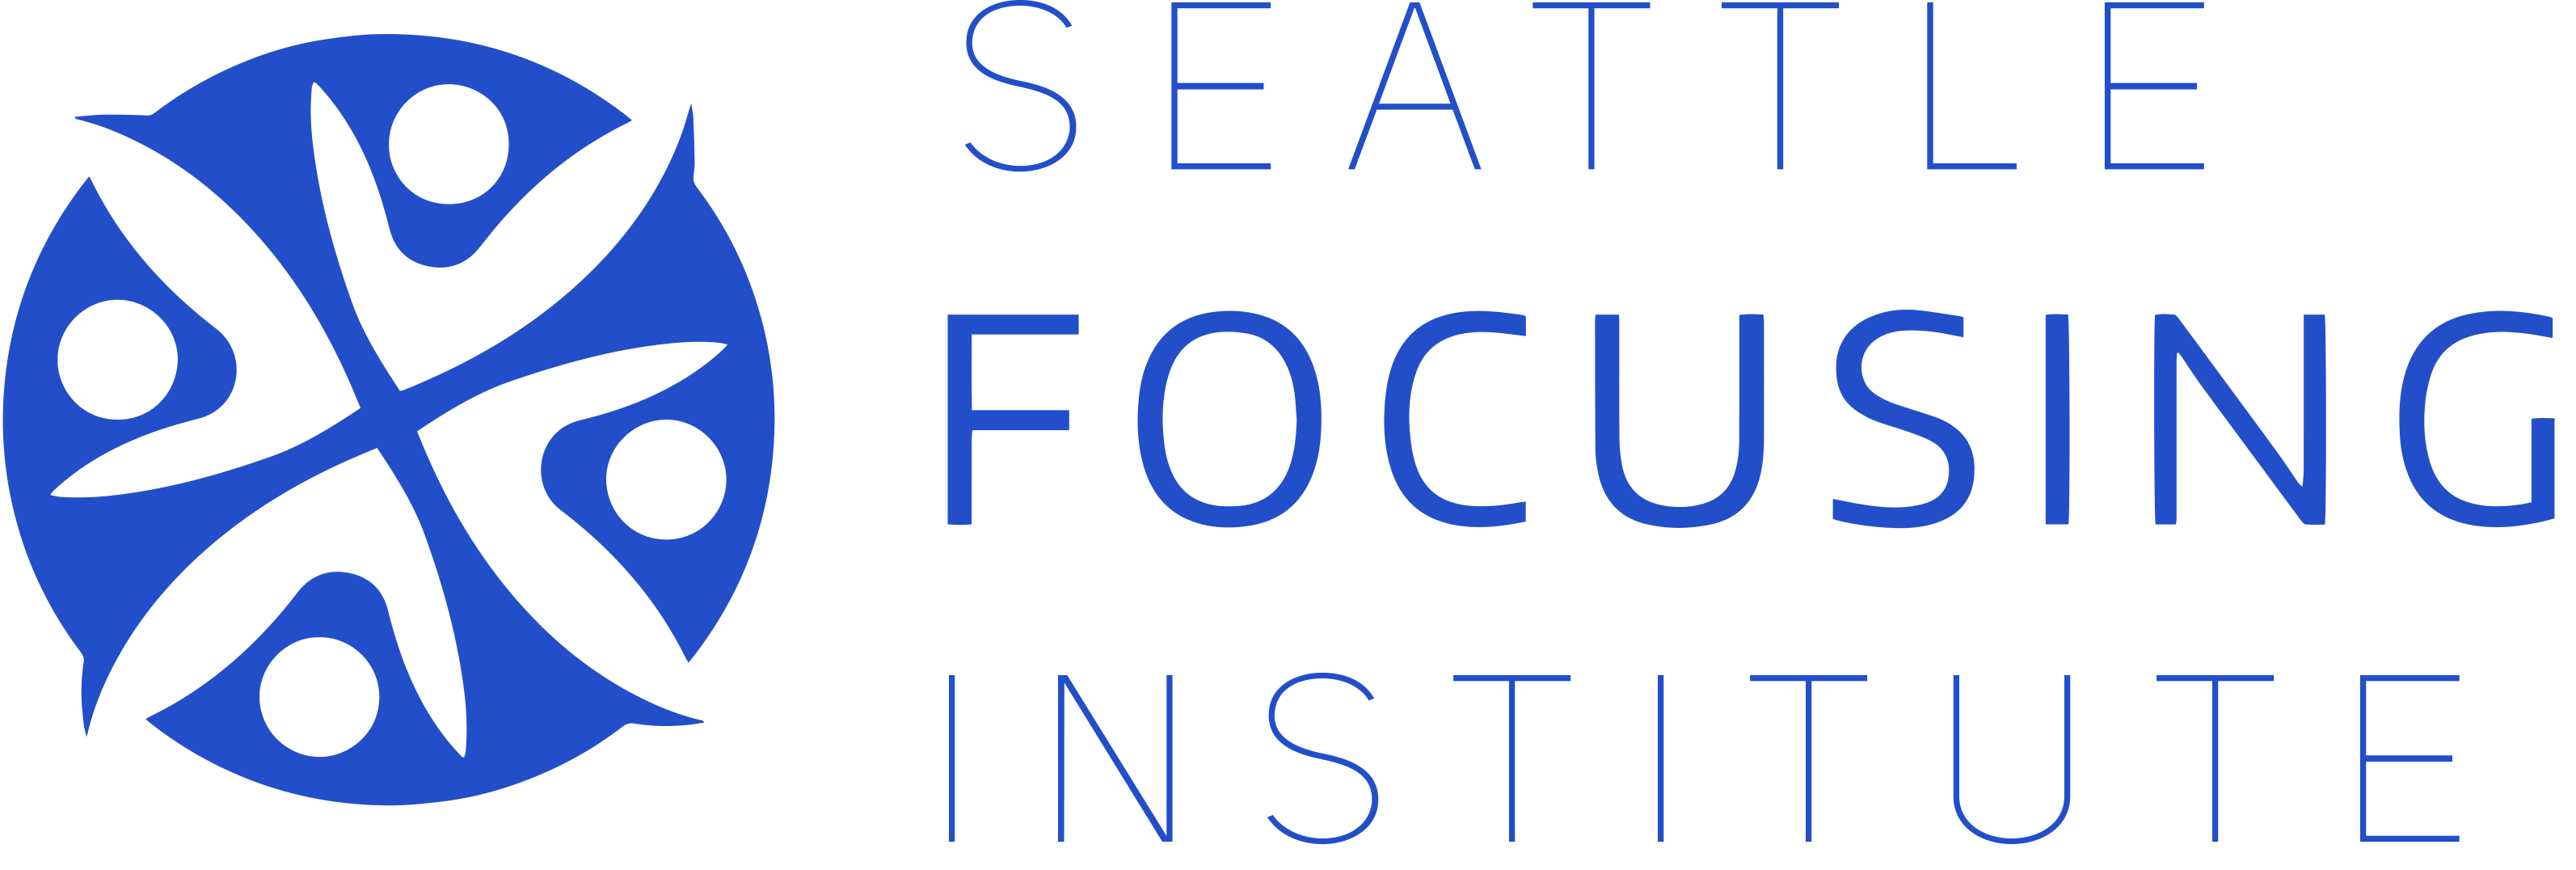 Seattle Focusing Institute